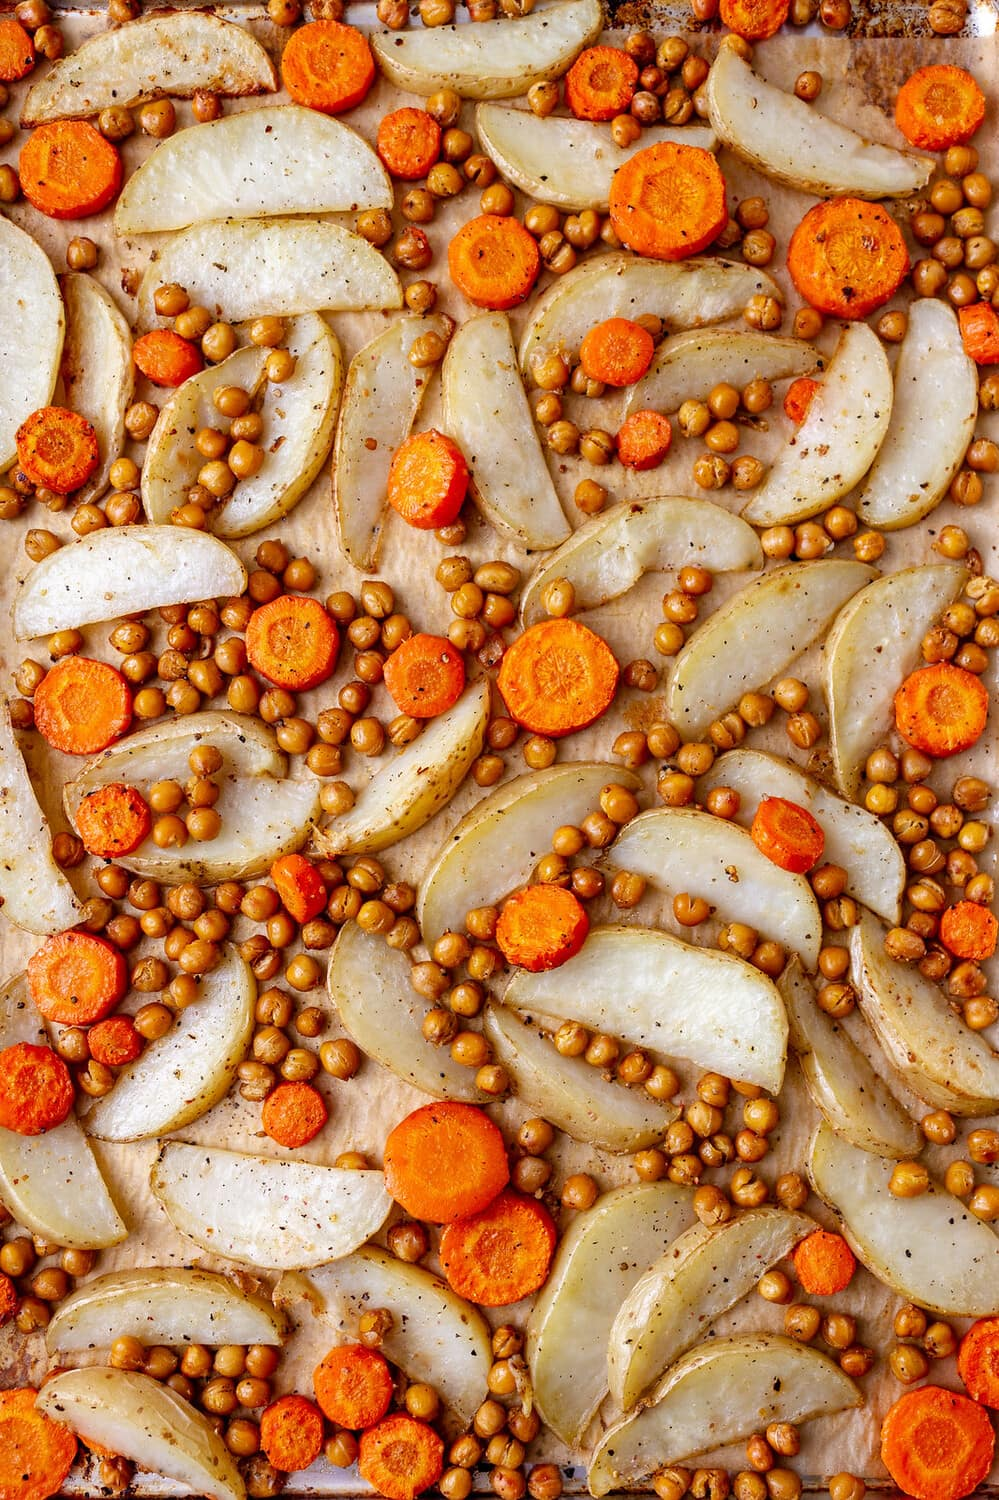 top down view of roasted chickpeas, potatoes and carrots on a rimmed baking sheet.